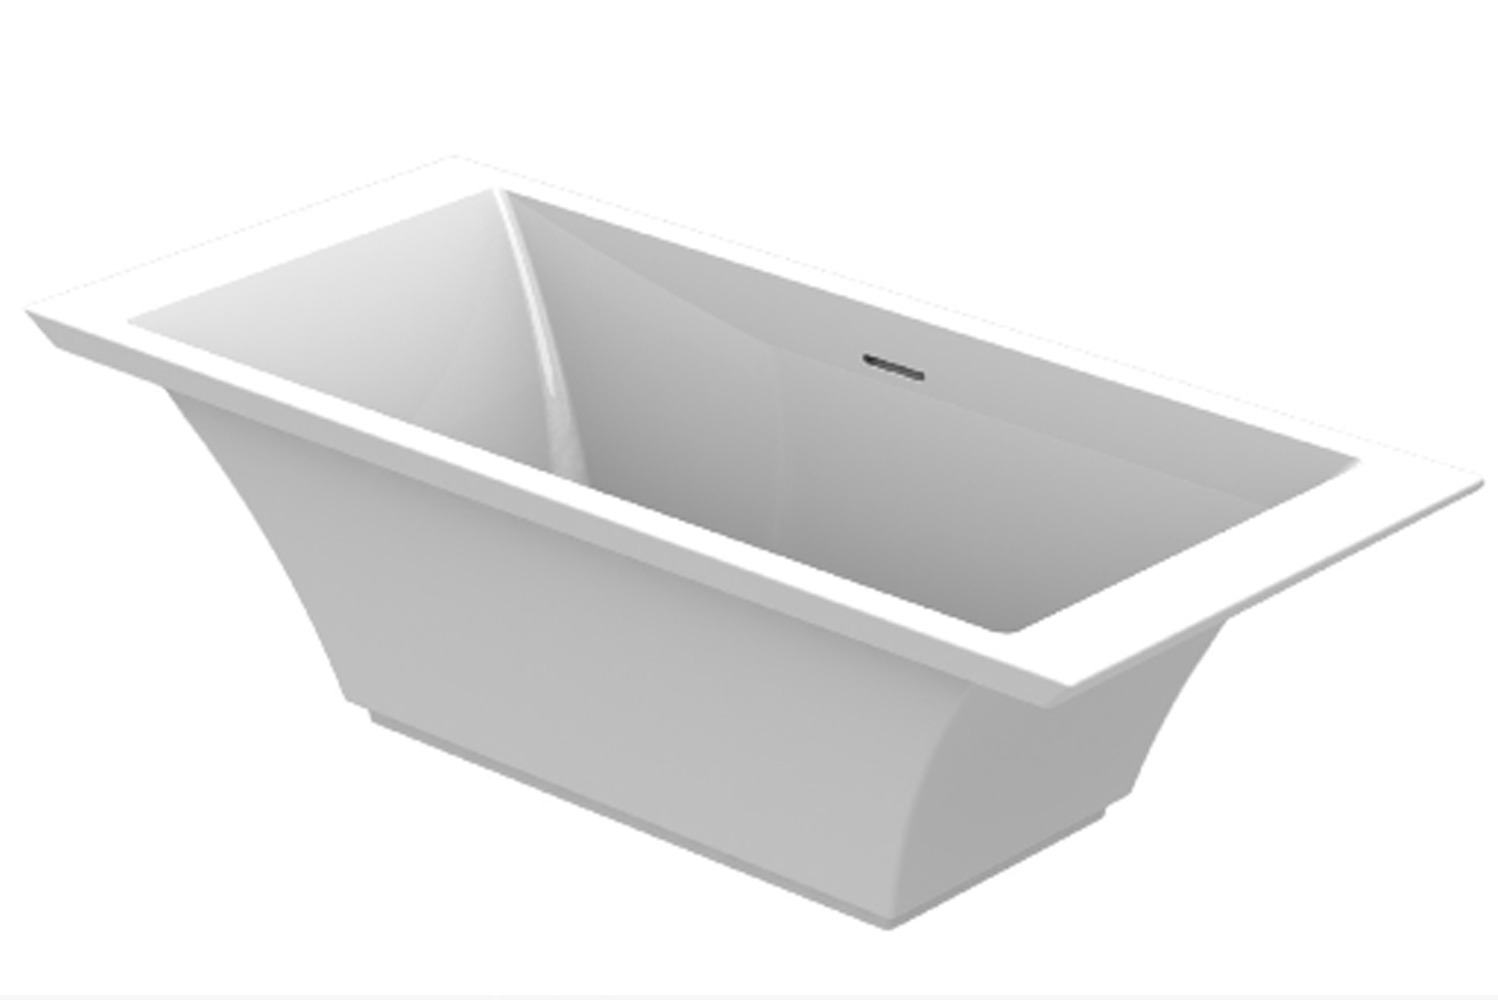 Graff's freestanding Finezza bathtub is available in gloss Sleek-Stone or matte Sleek-Stone finishes.